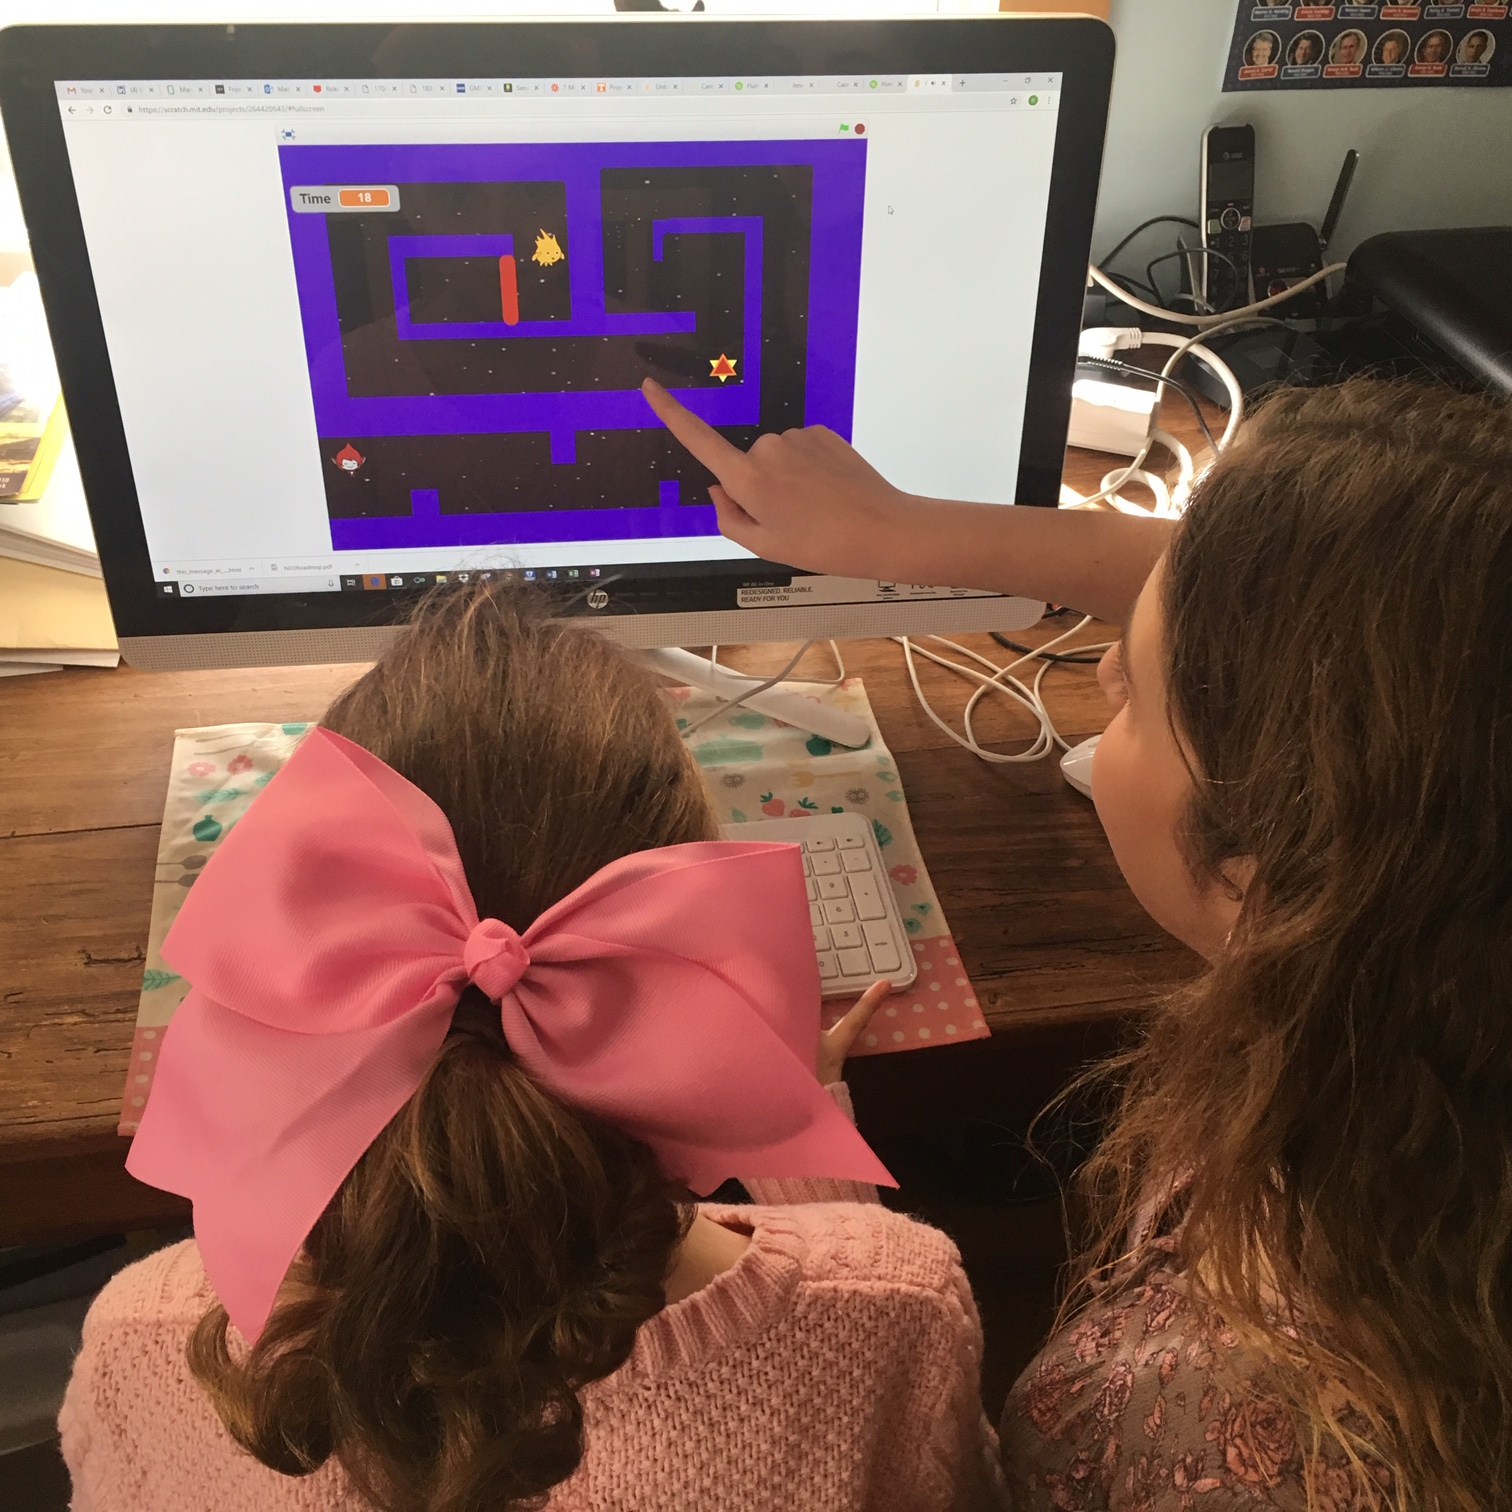 Demonstrating her game from her online Scratch programming class